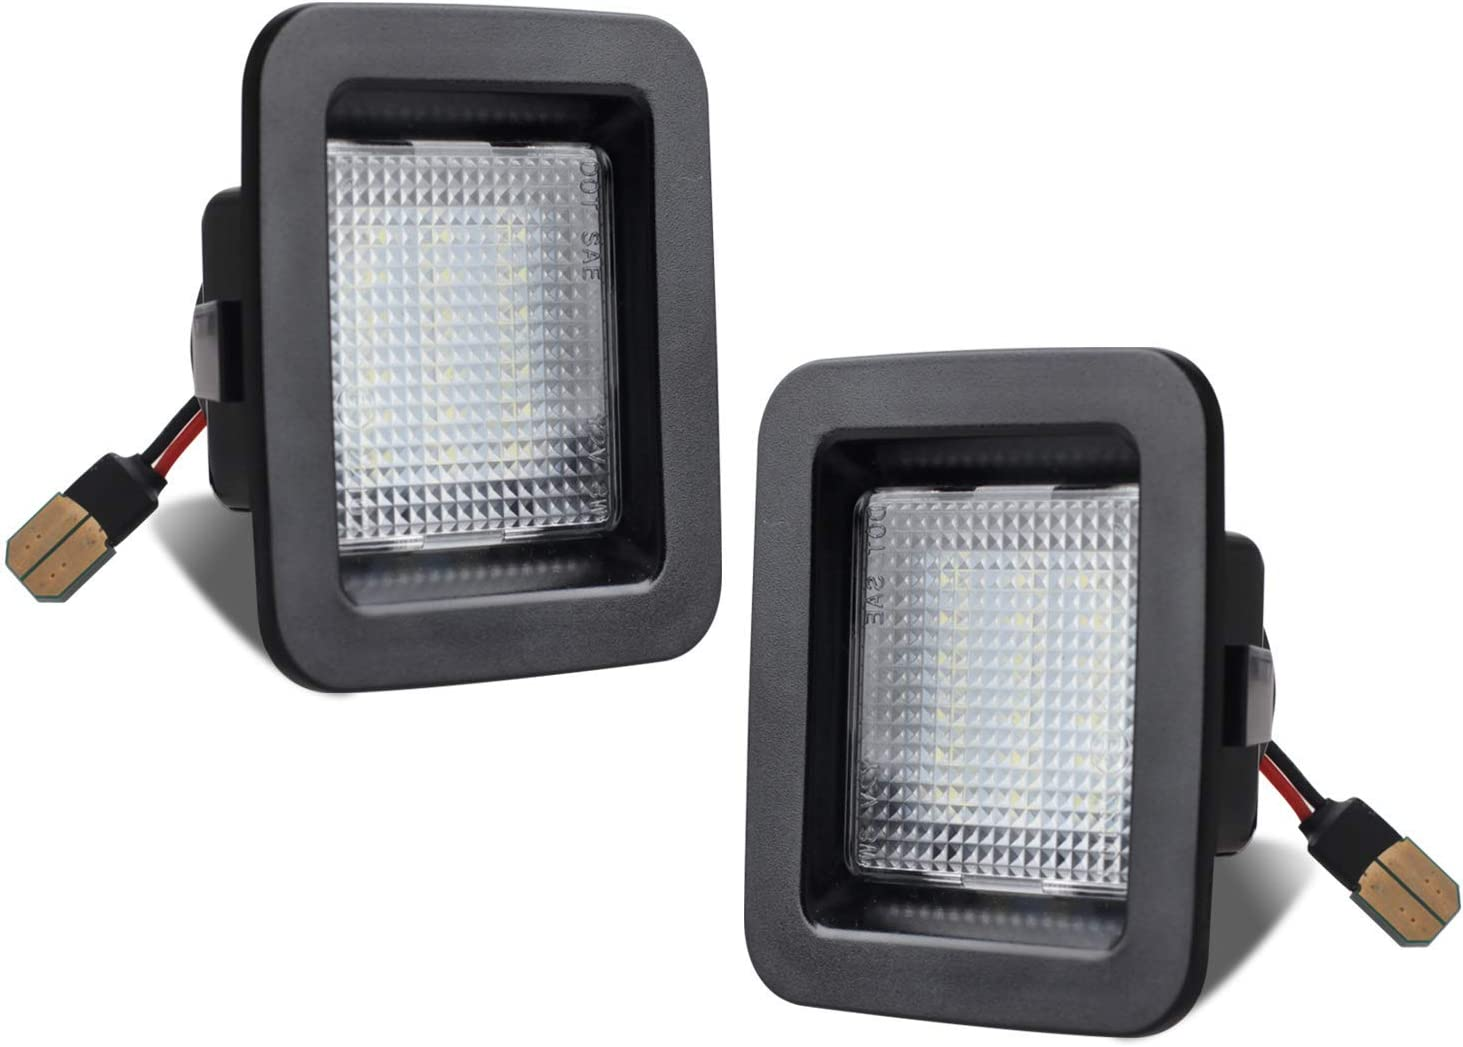 RUXIFEY LED License Plate Light Lamp Compatible with 2015 to 2018 Ford F150, 2017 2018 F150 Raptor, 6000K White, Pack of 2